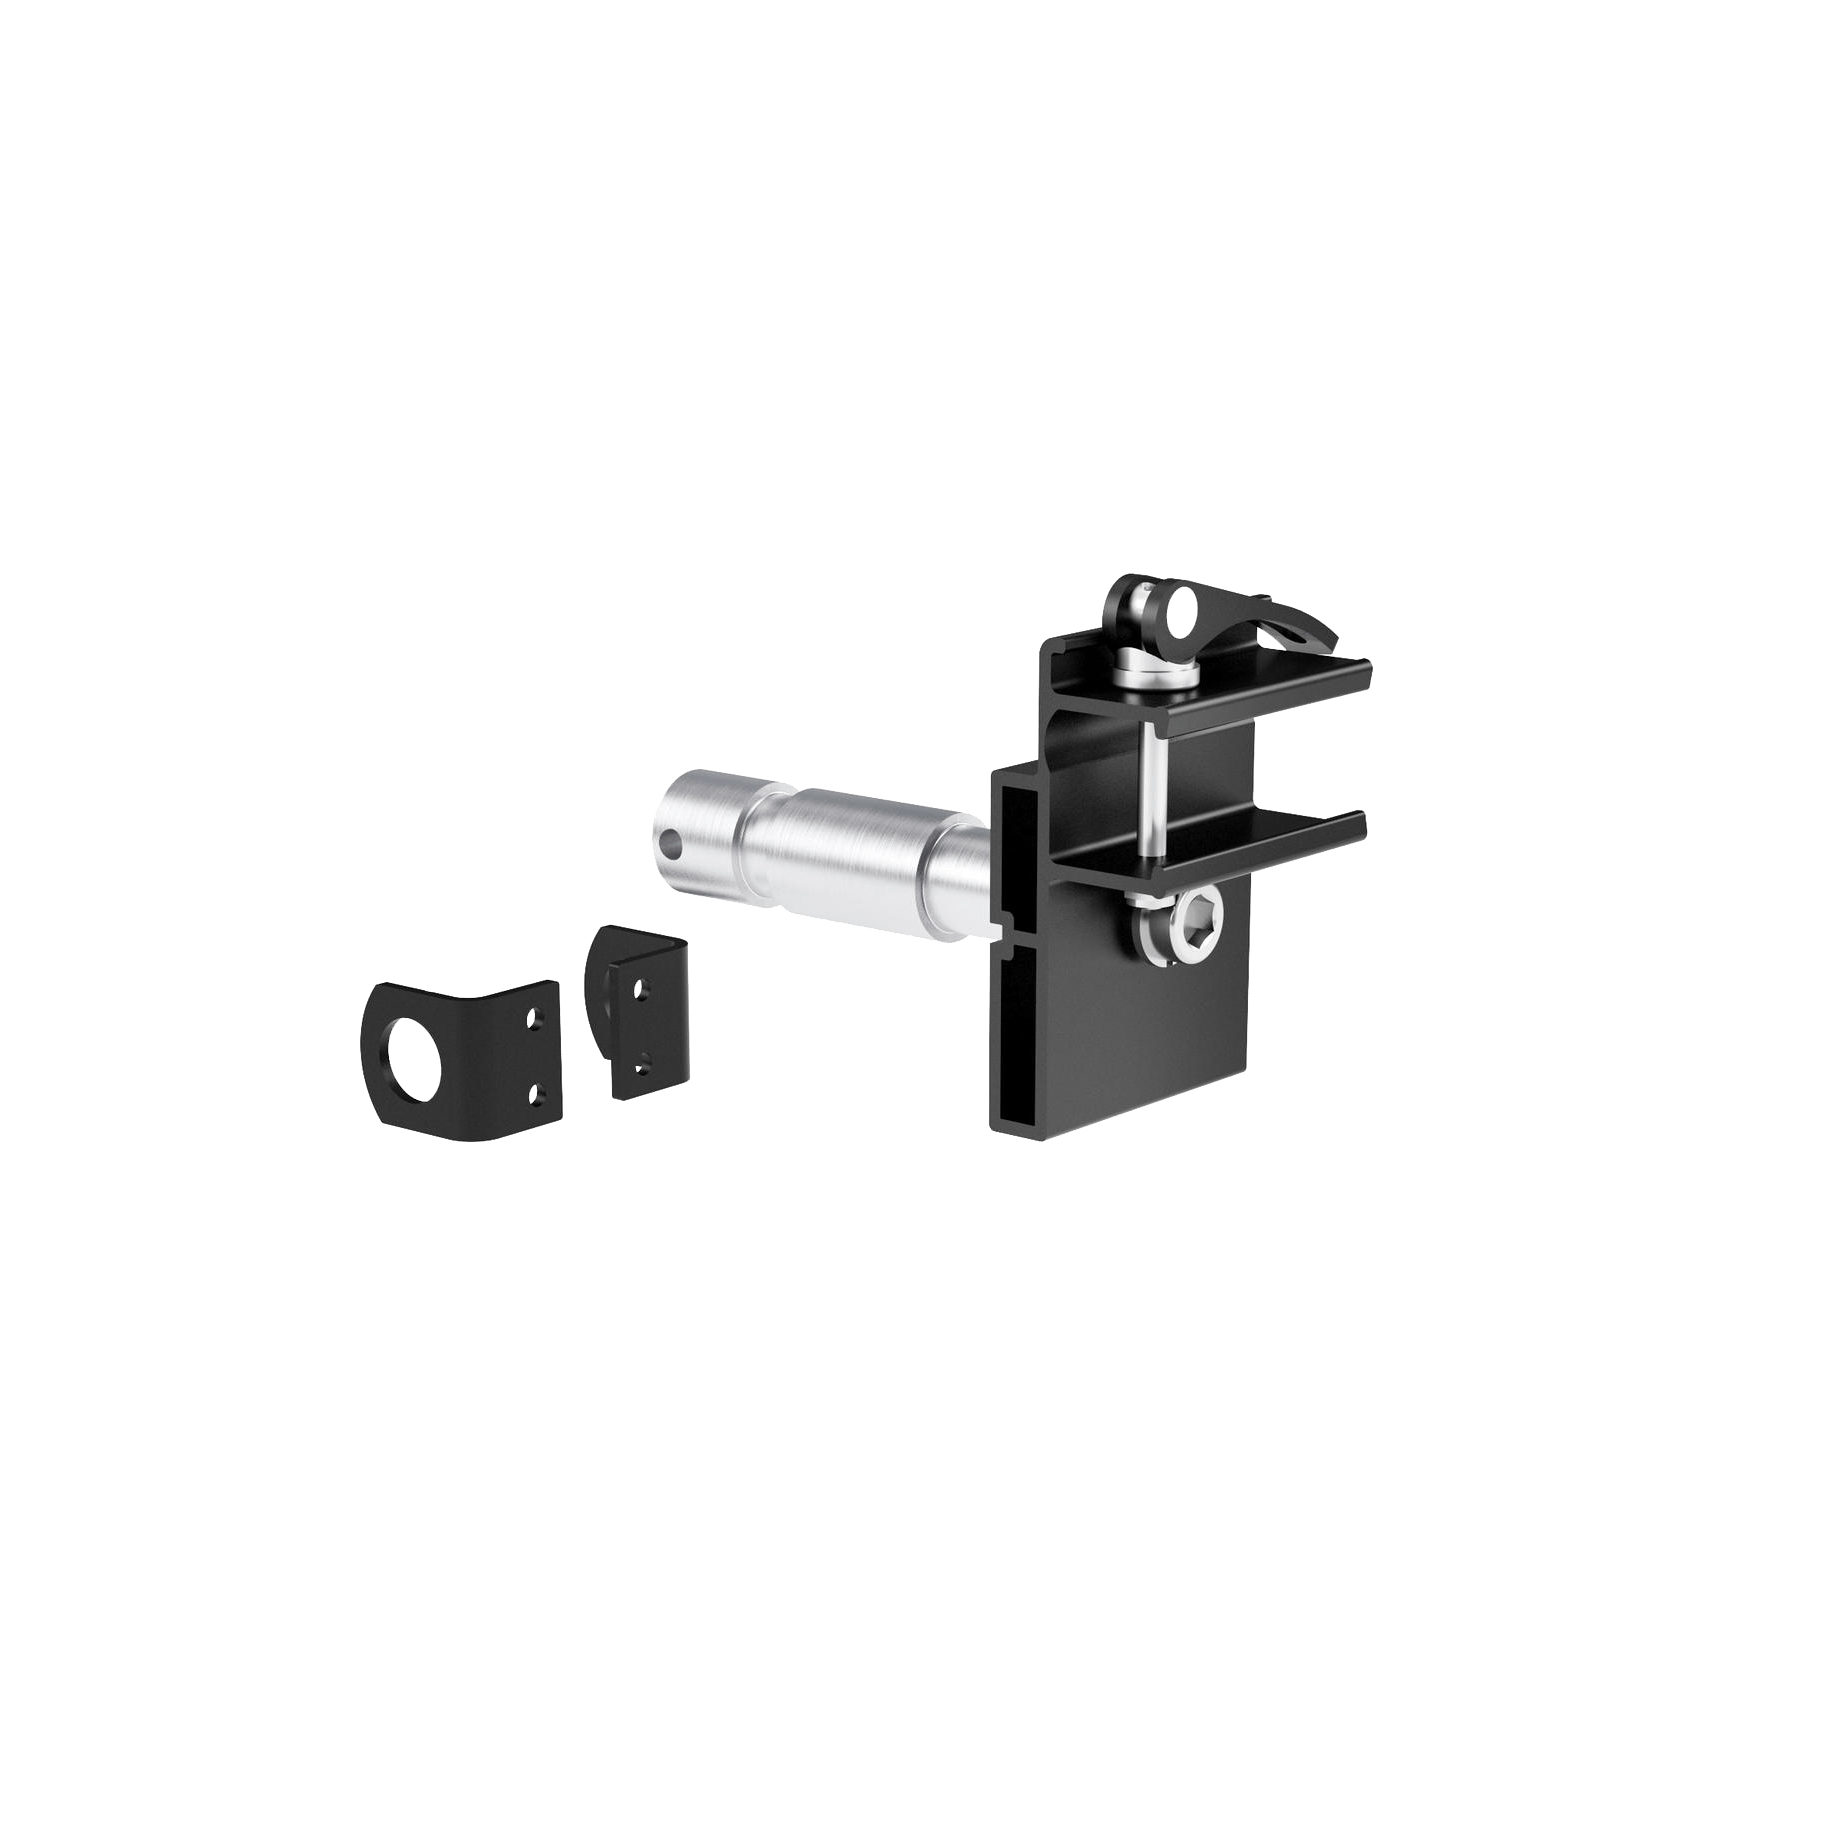 ARRI SkyPanel S30, S60, S120 Fixed Centre Mount Yoke